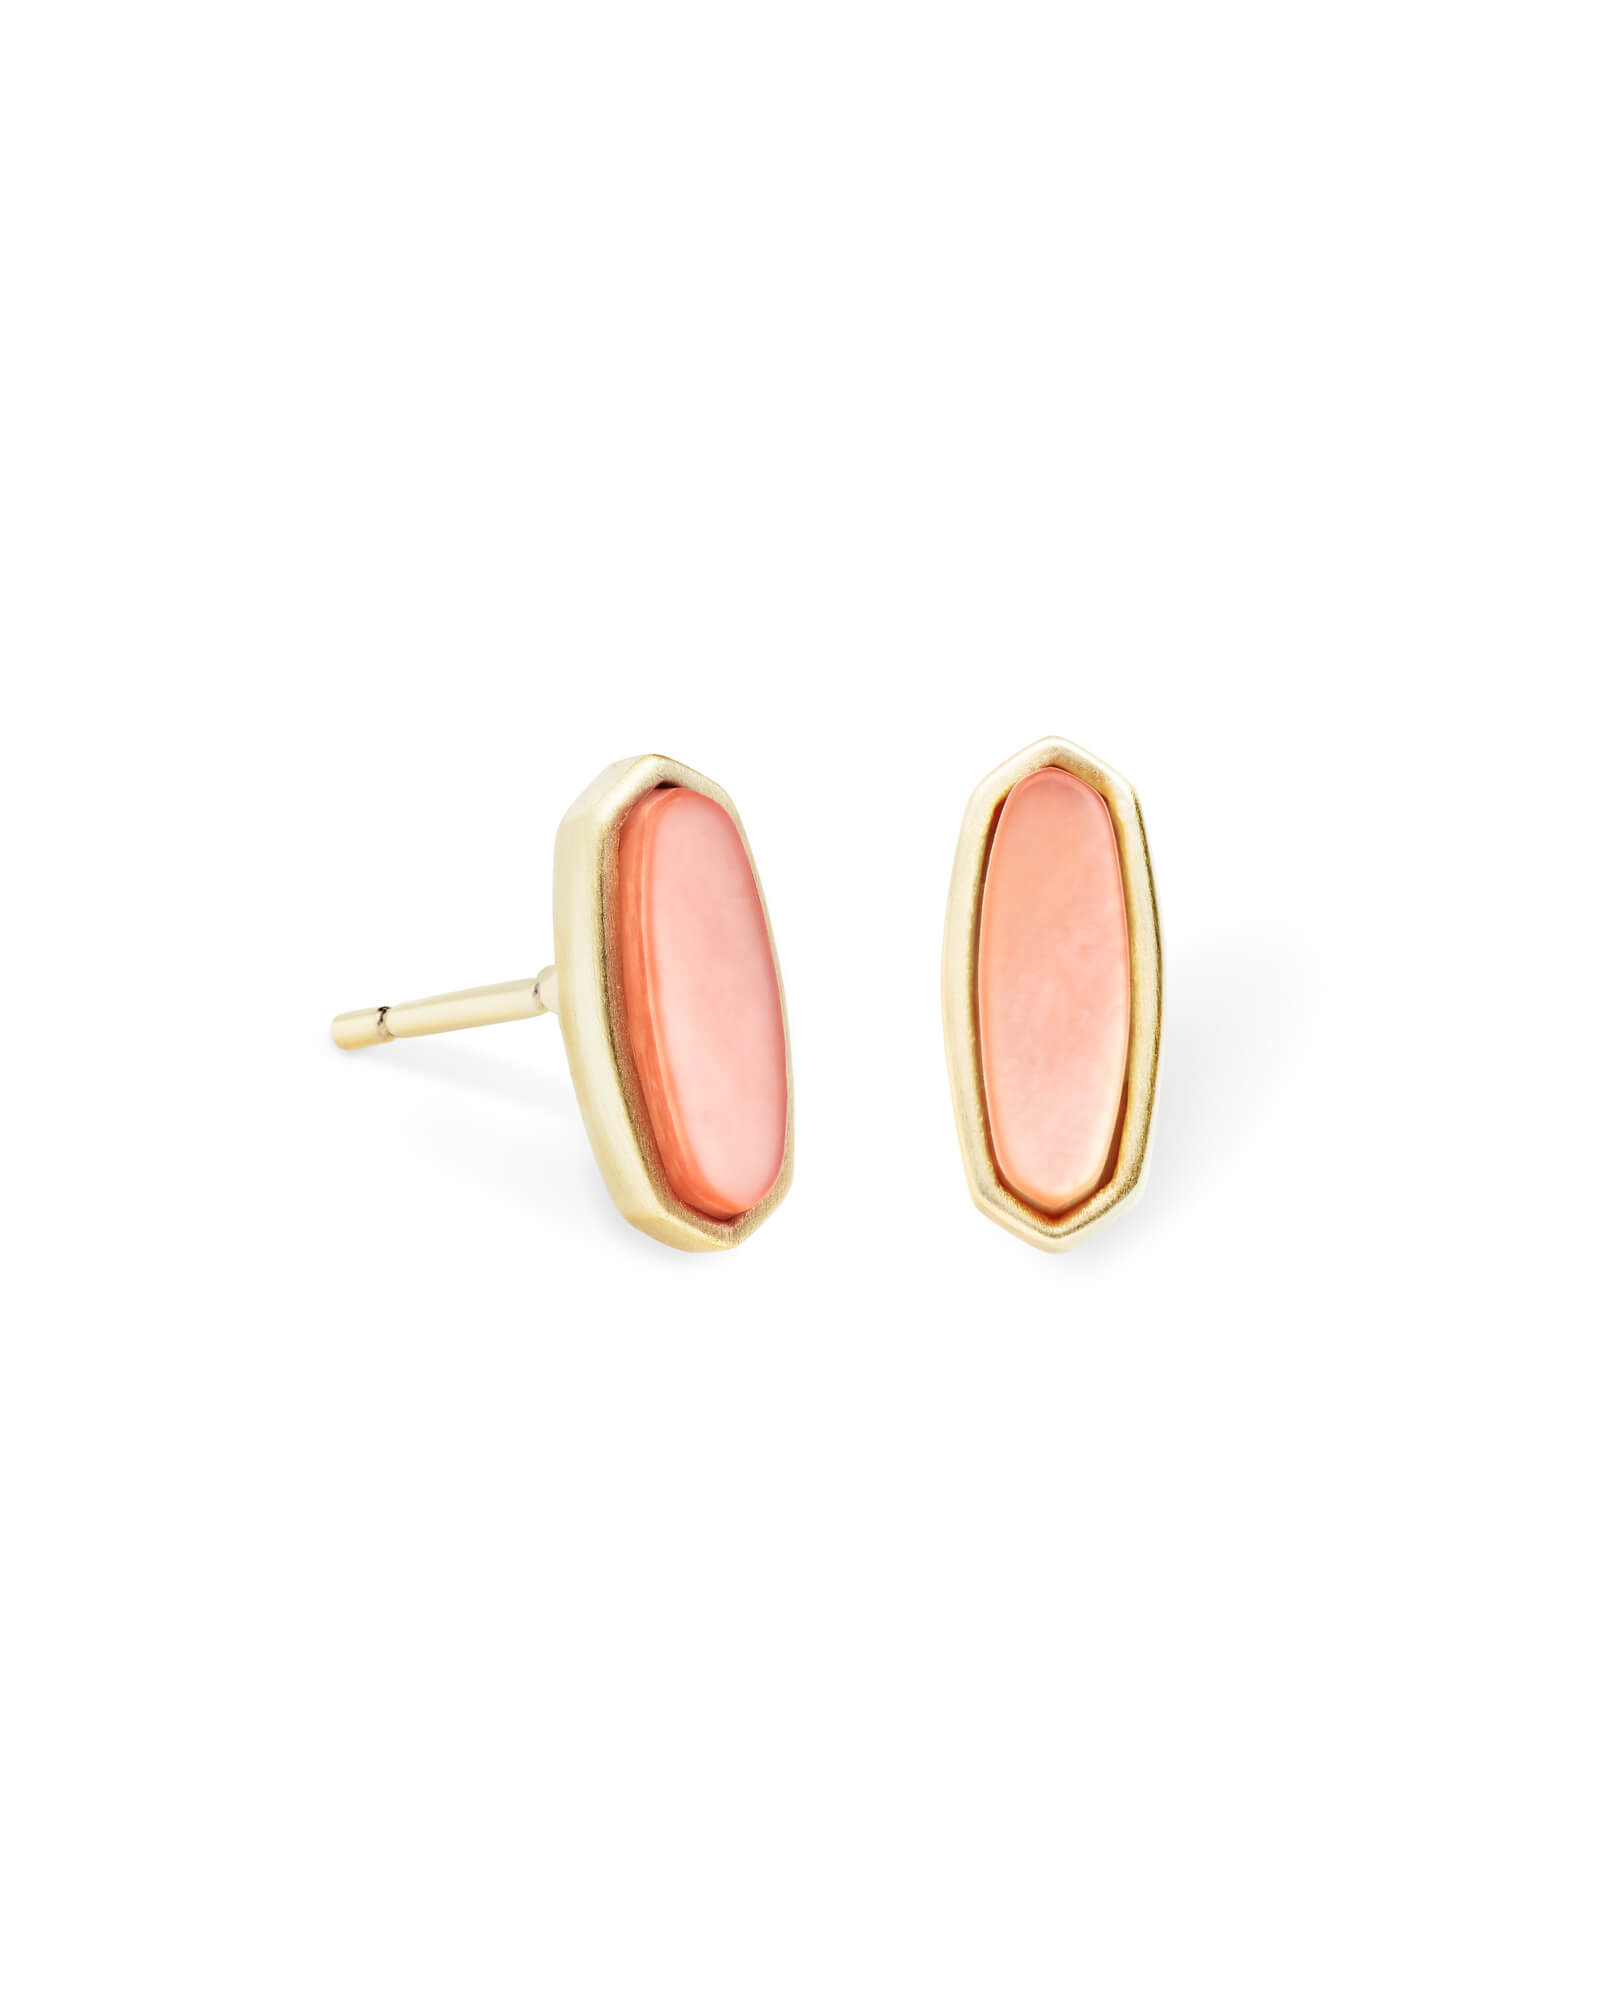 Mae Gold Stud Earrings in Peach Pearl